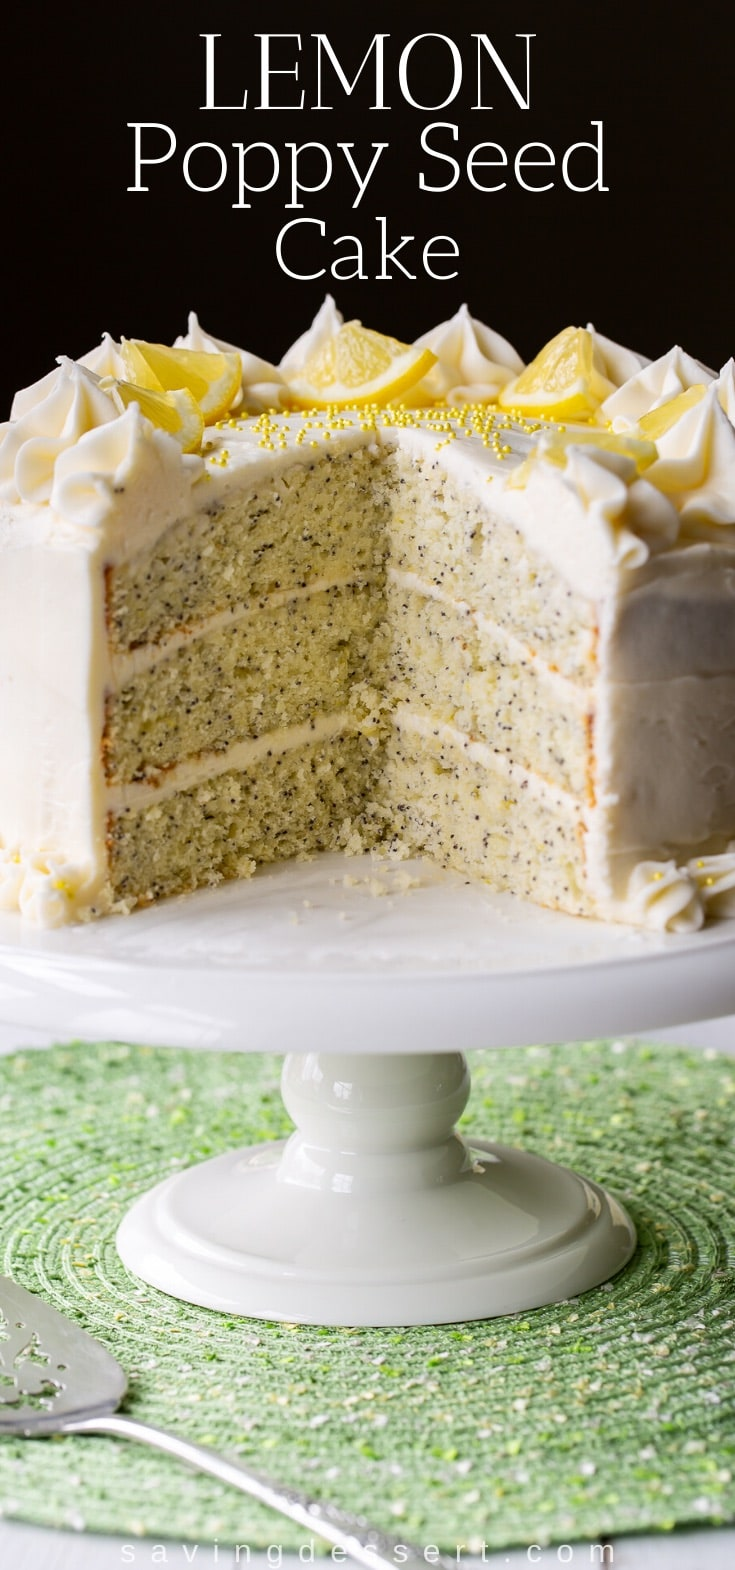 A sliced lemon poppy seed cake with three layers and lemon cream cheese frosting on a cake stand